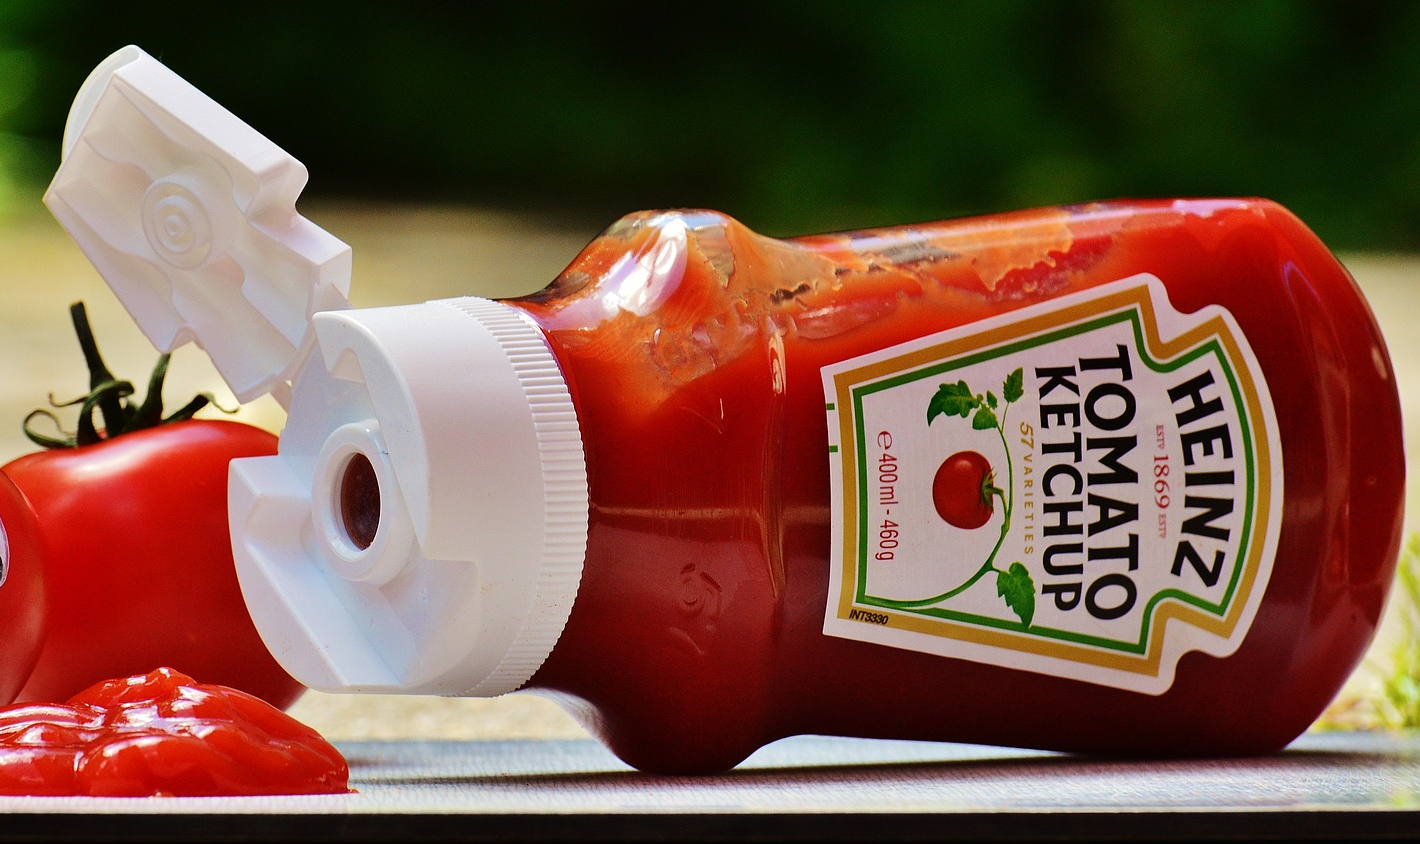 The nation is now facing a Ketchup shortage